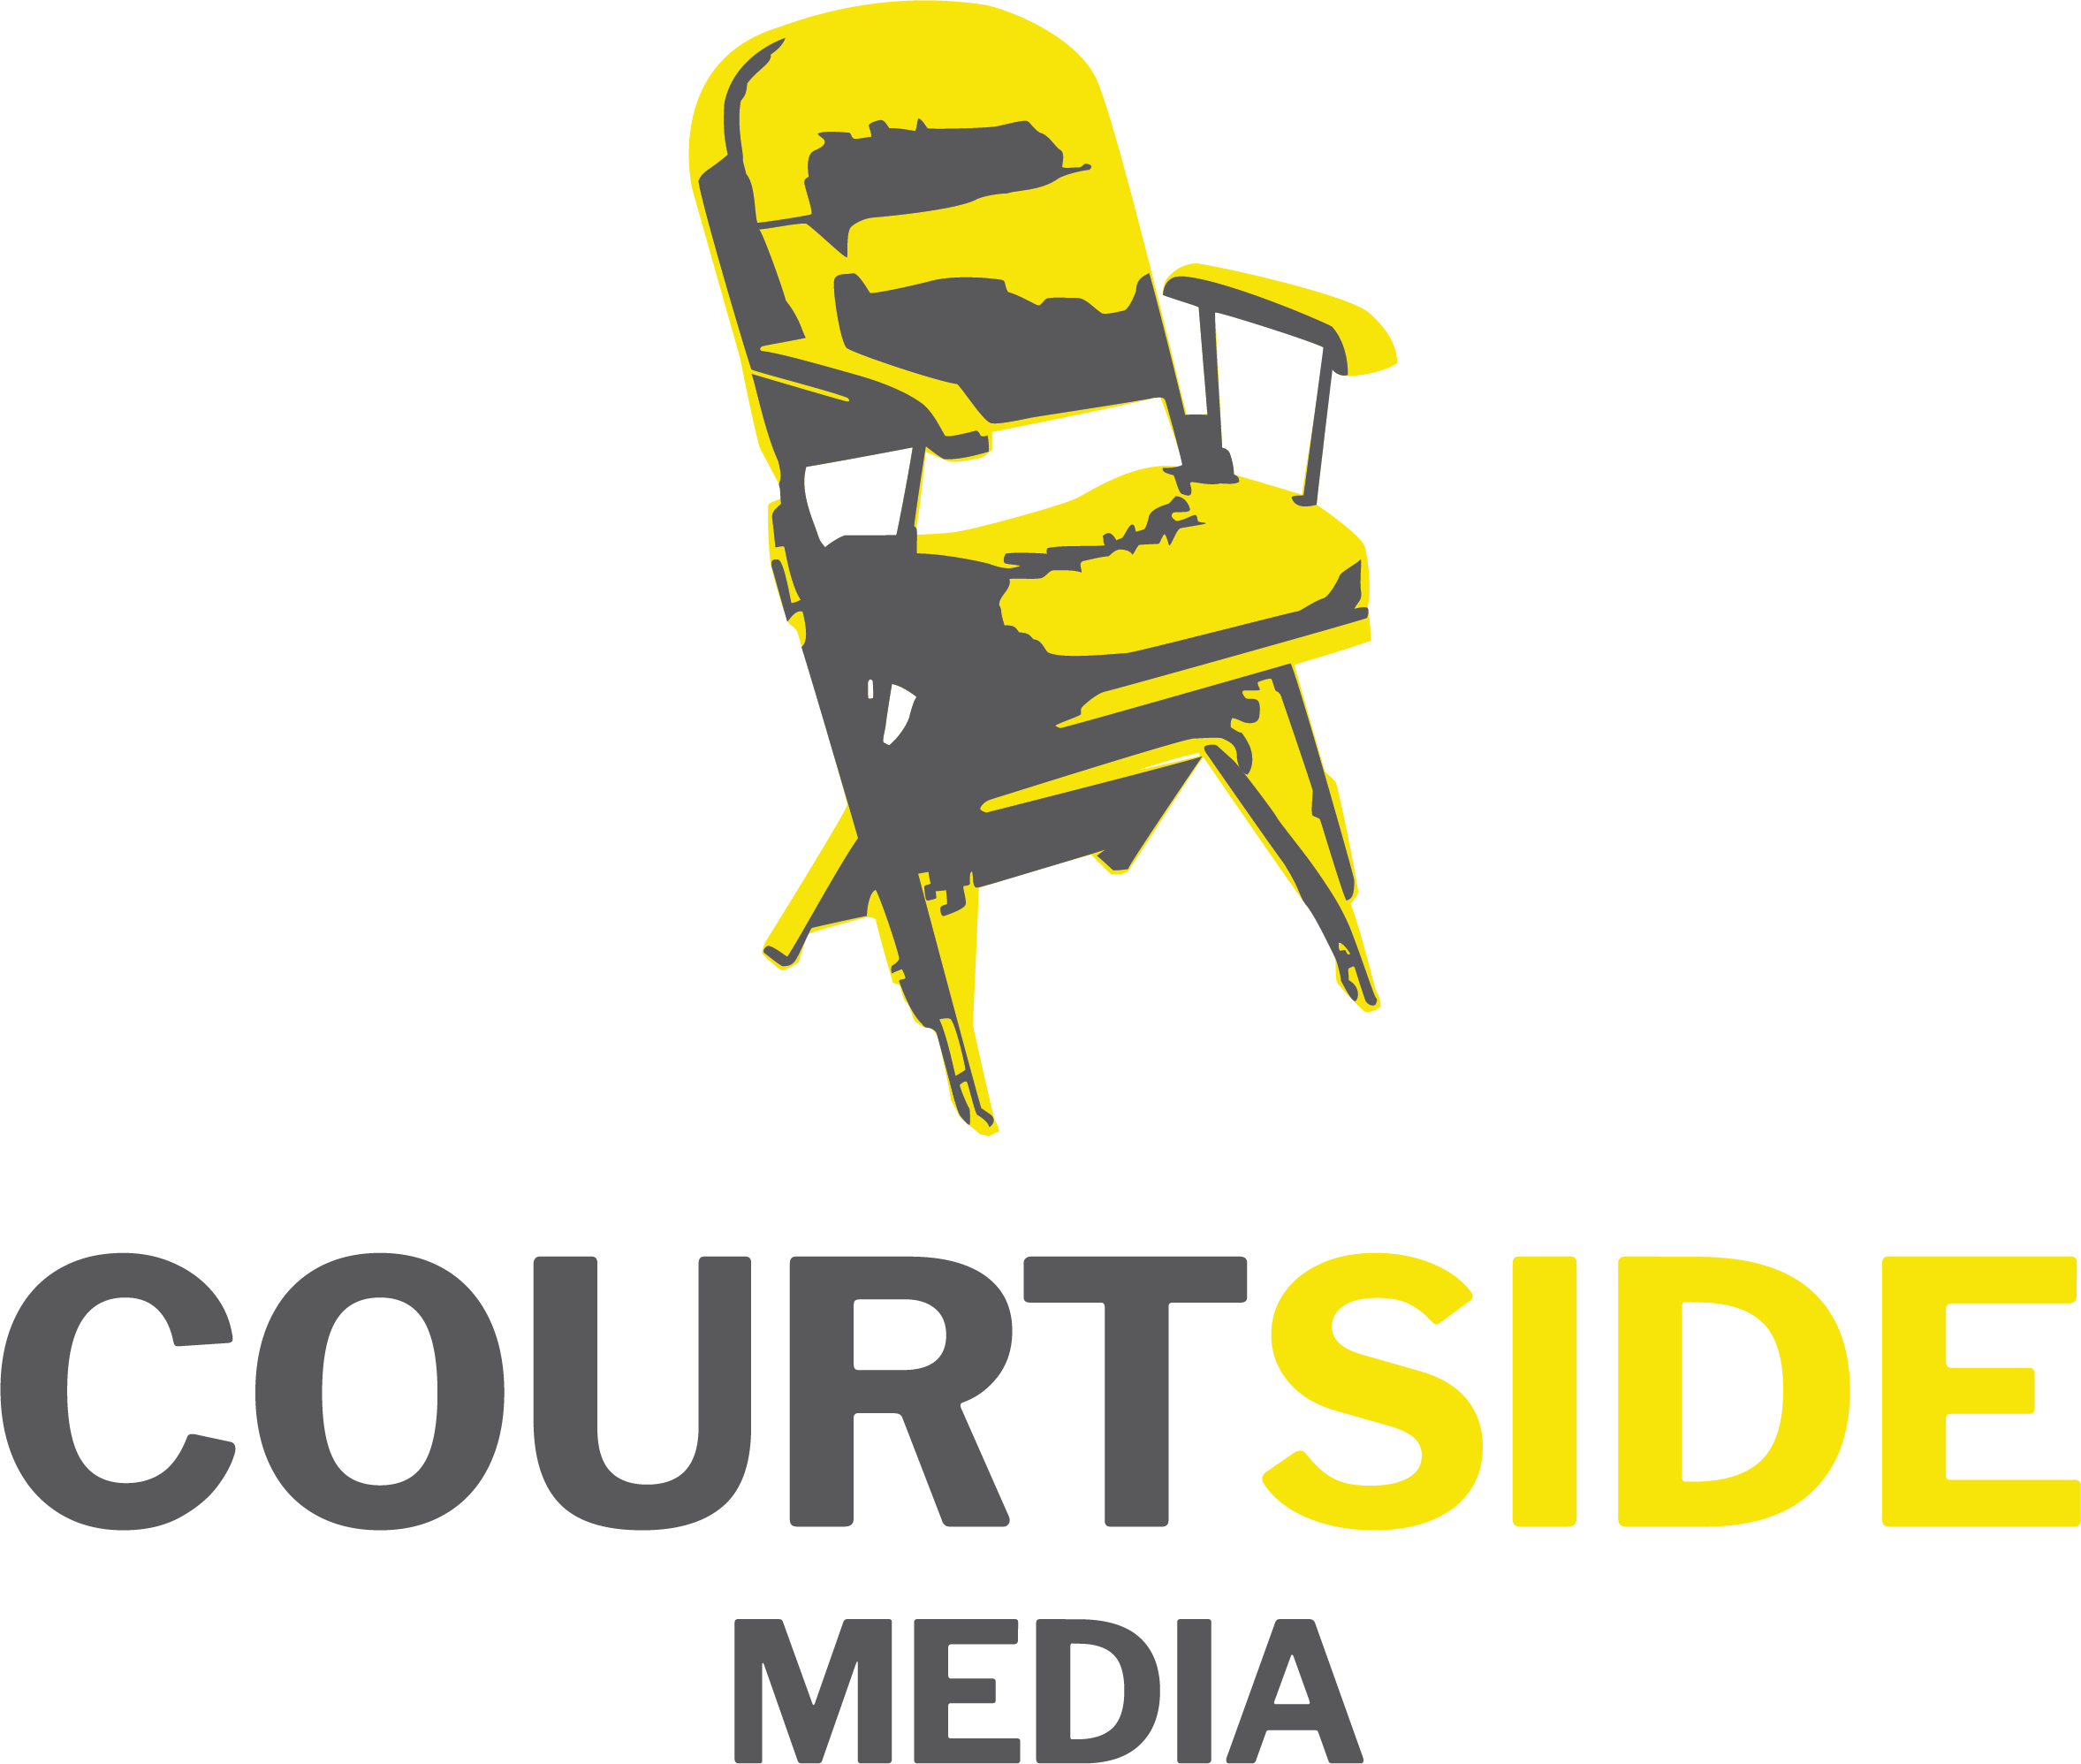 courtside_main